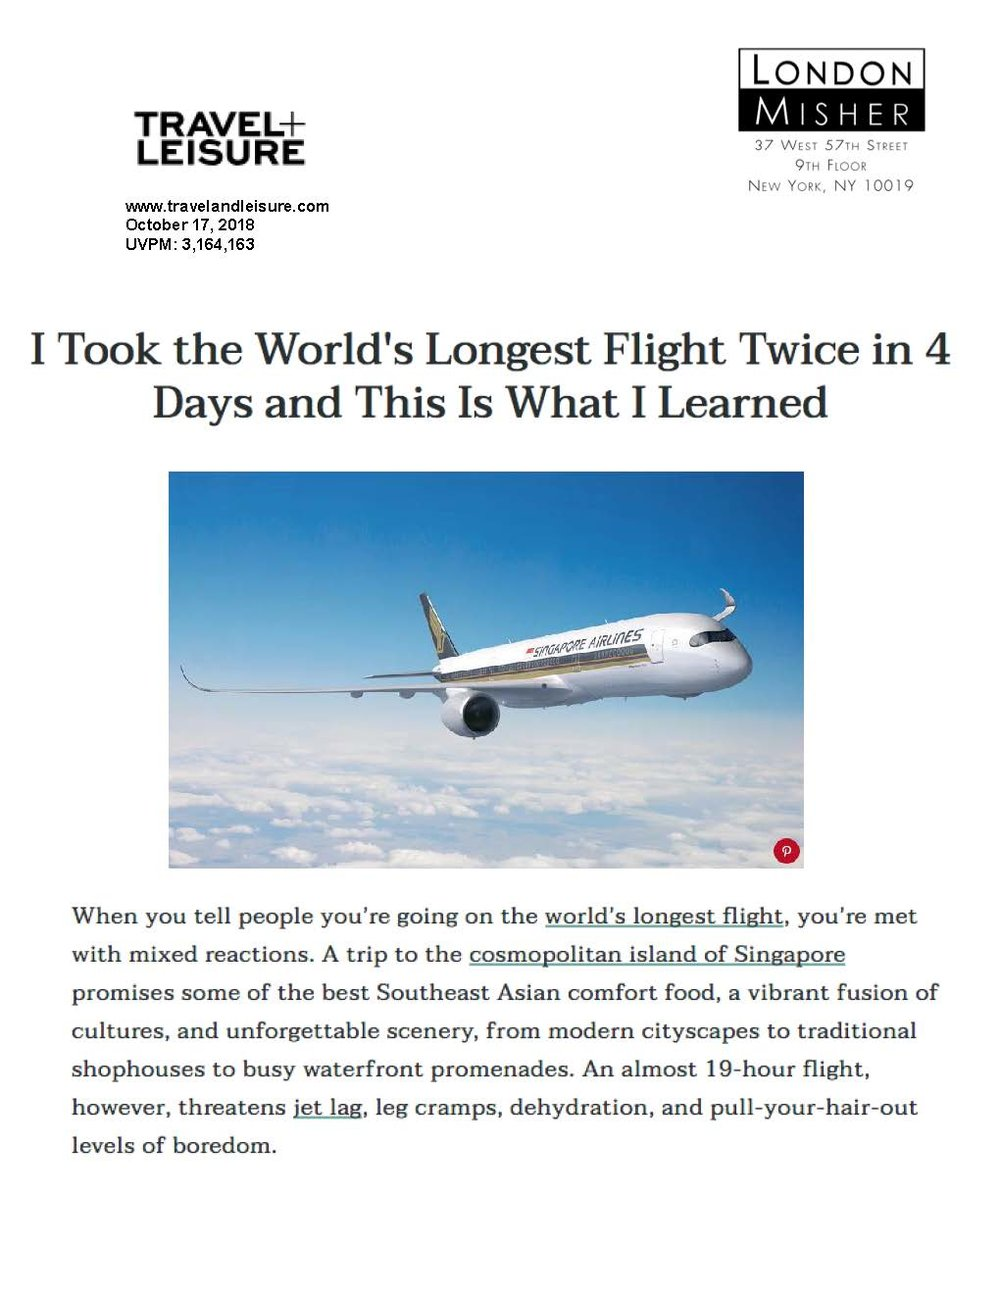 Travel + Leisure 10.17.18_Page_1.jpg